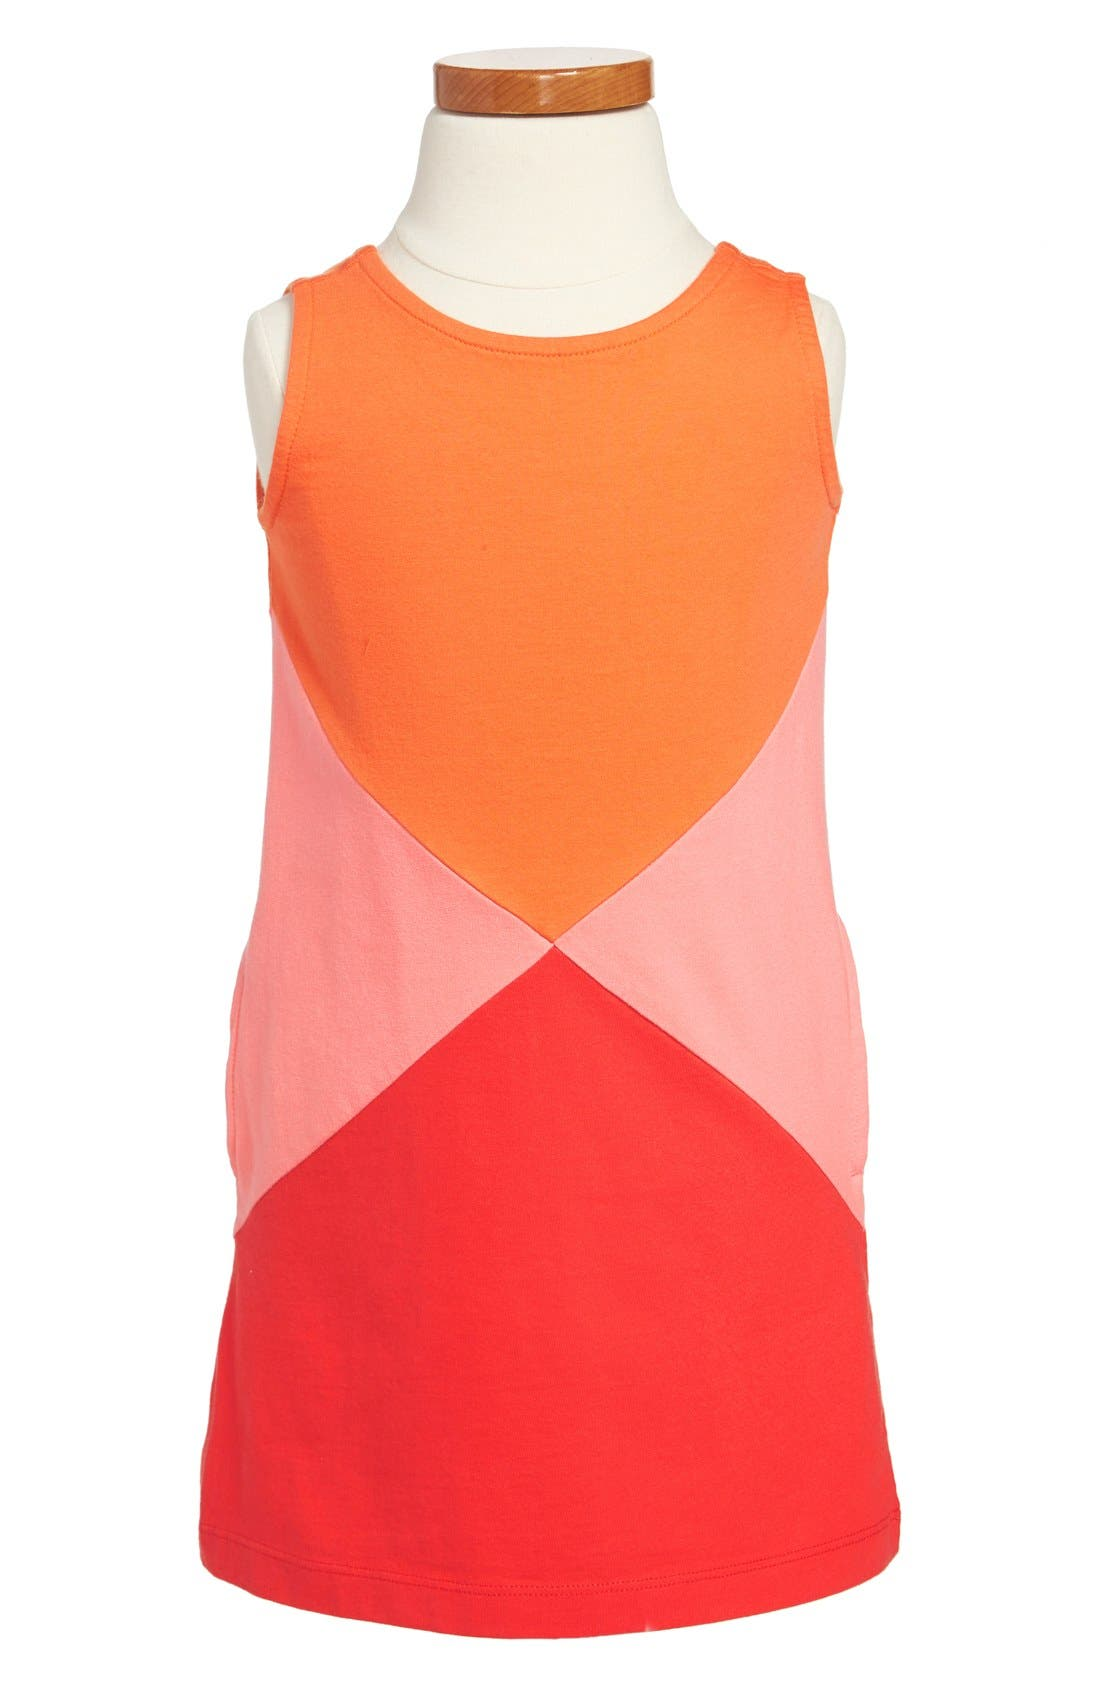 Alternate Image 1 Selected - Tea Collection 'Colorblock Sail' Sleeveless Dress (Little Girls & Big Girls)